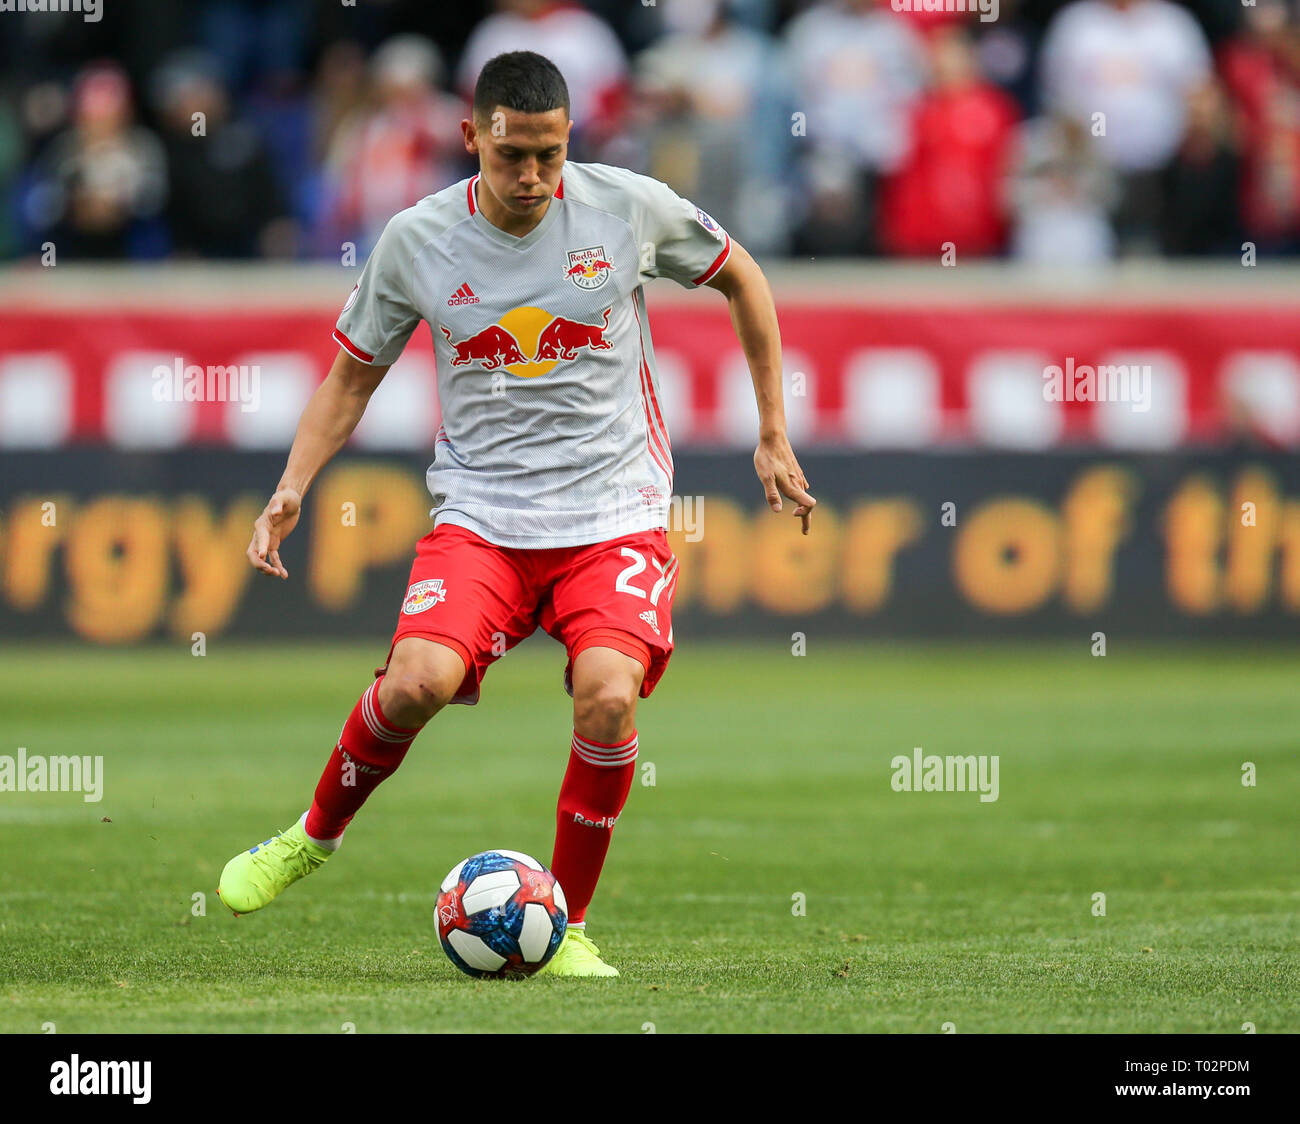 f2cacc5fc Sean Jose Stock Photos   Sean Jose Stock Images - Alamy